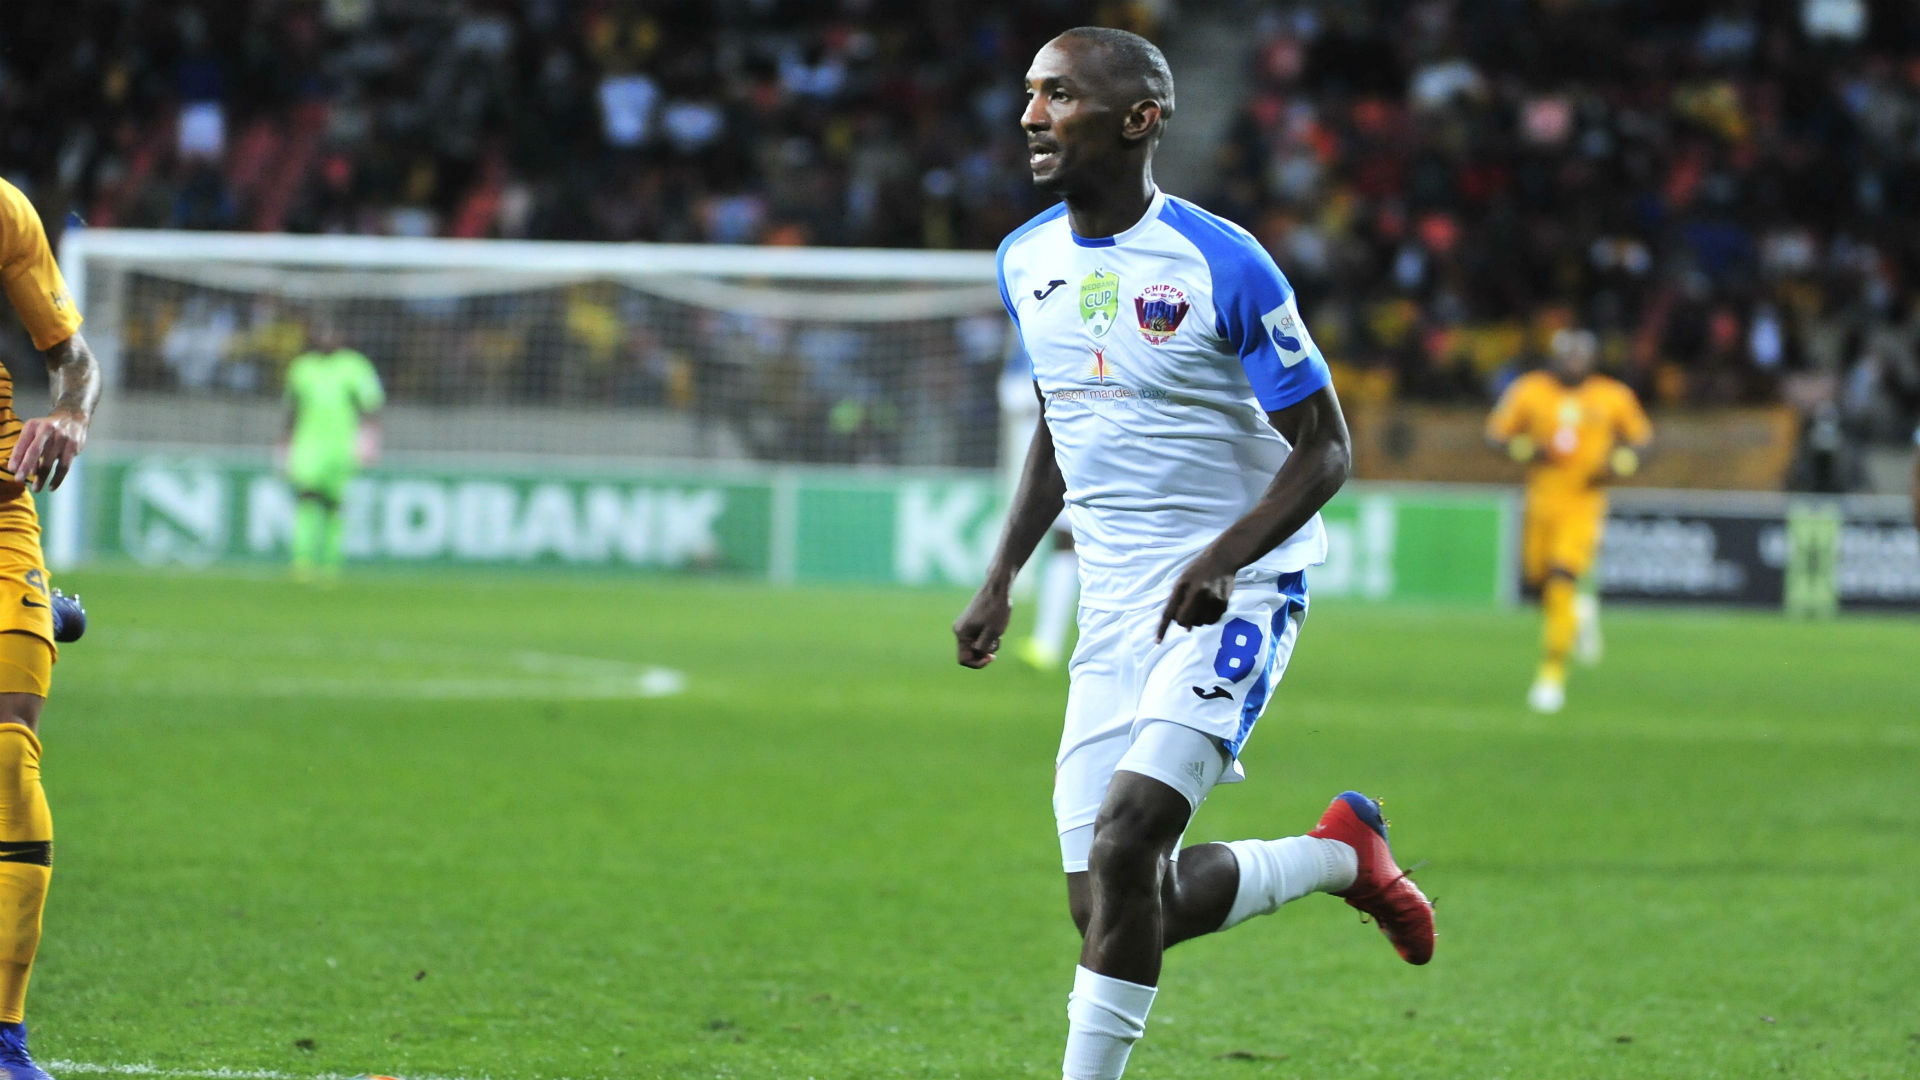 Thabo Rakhale of Chippa United v Kaizer Chiefs, April 2019